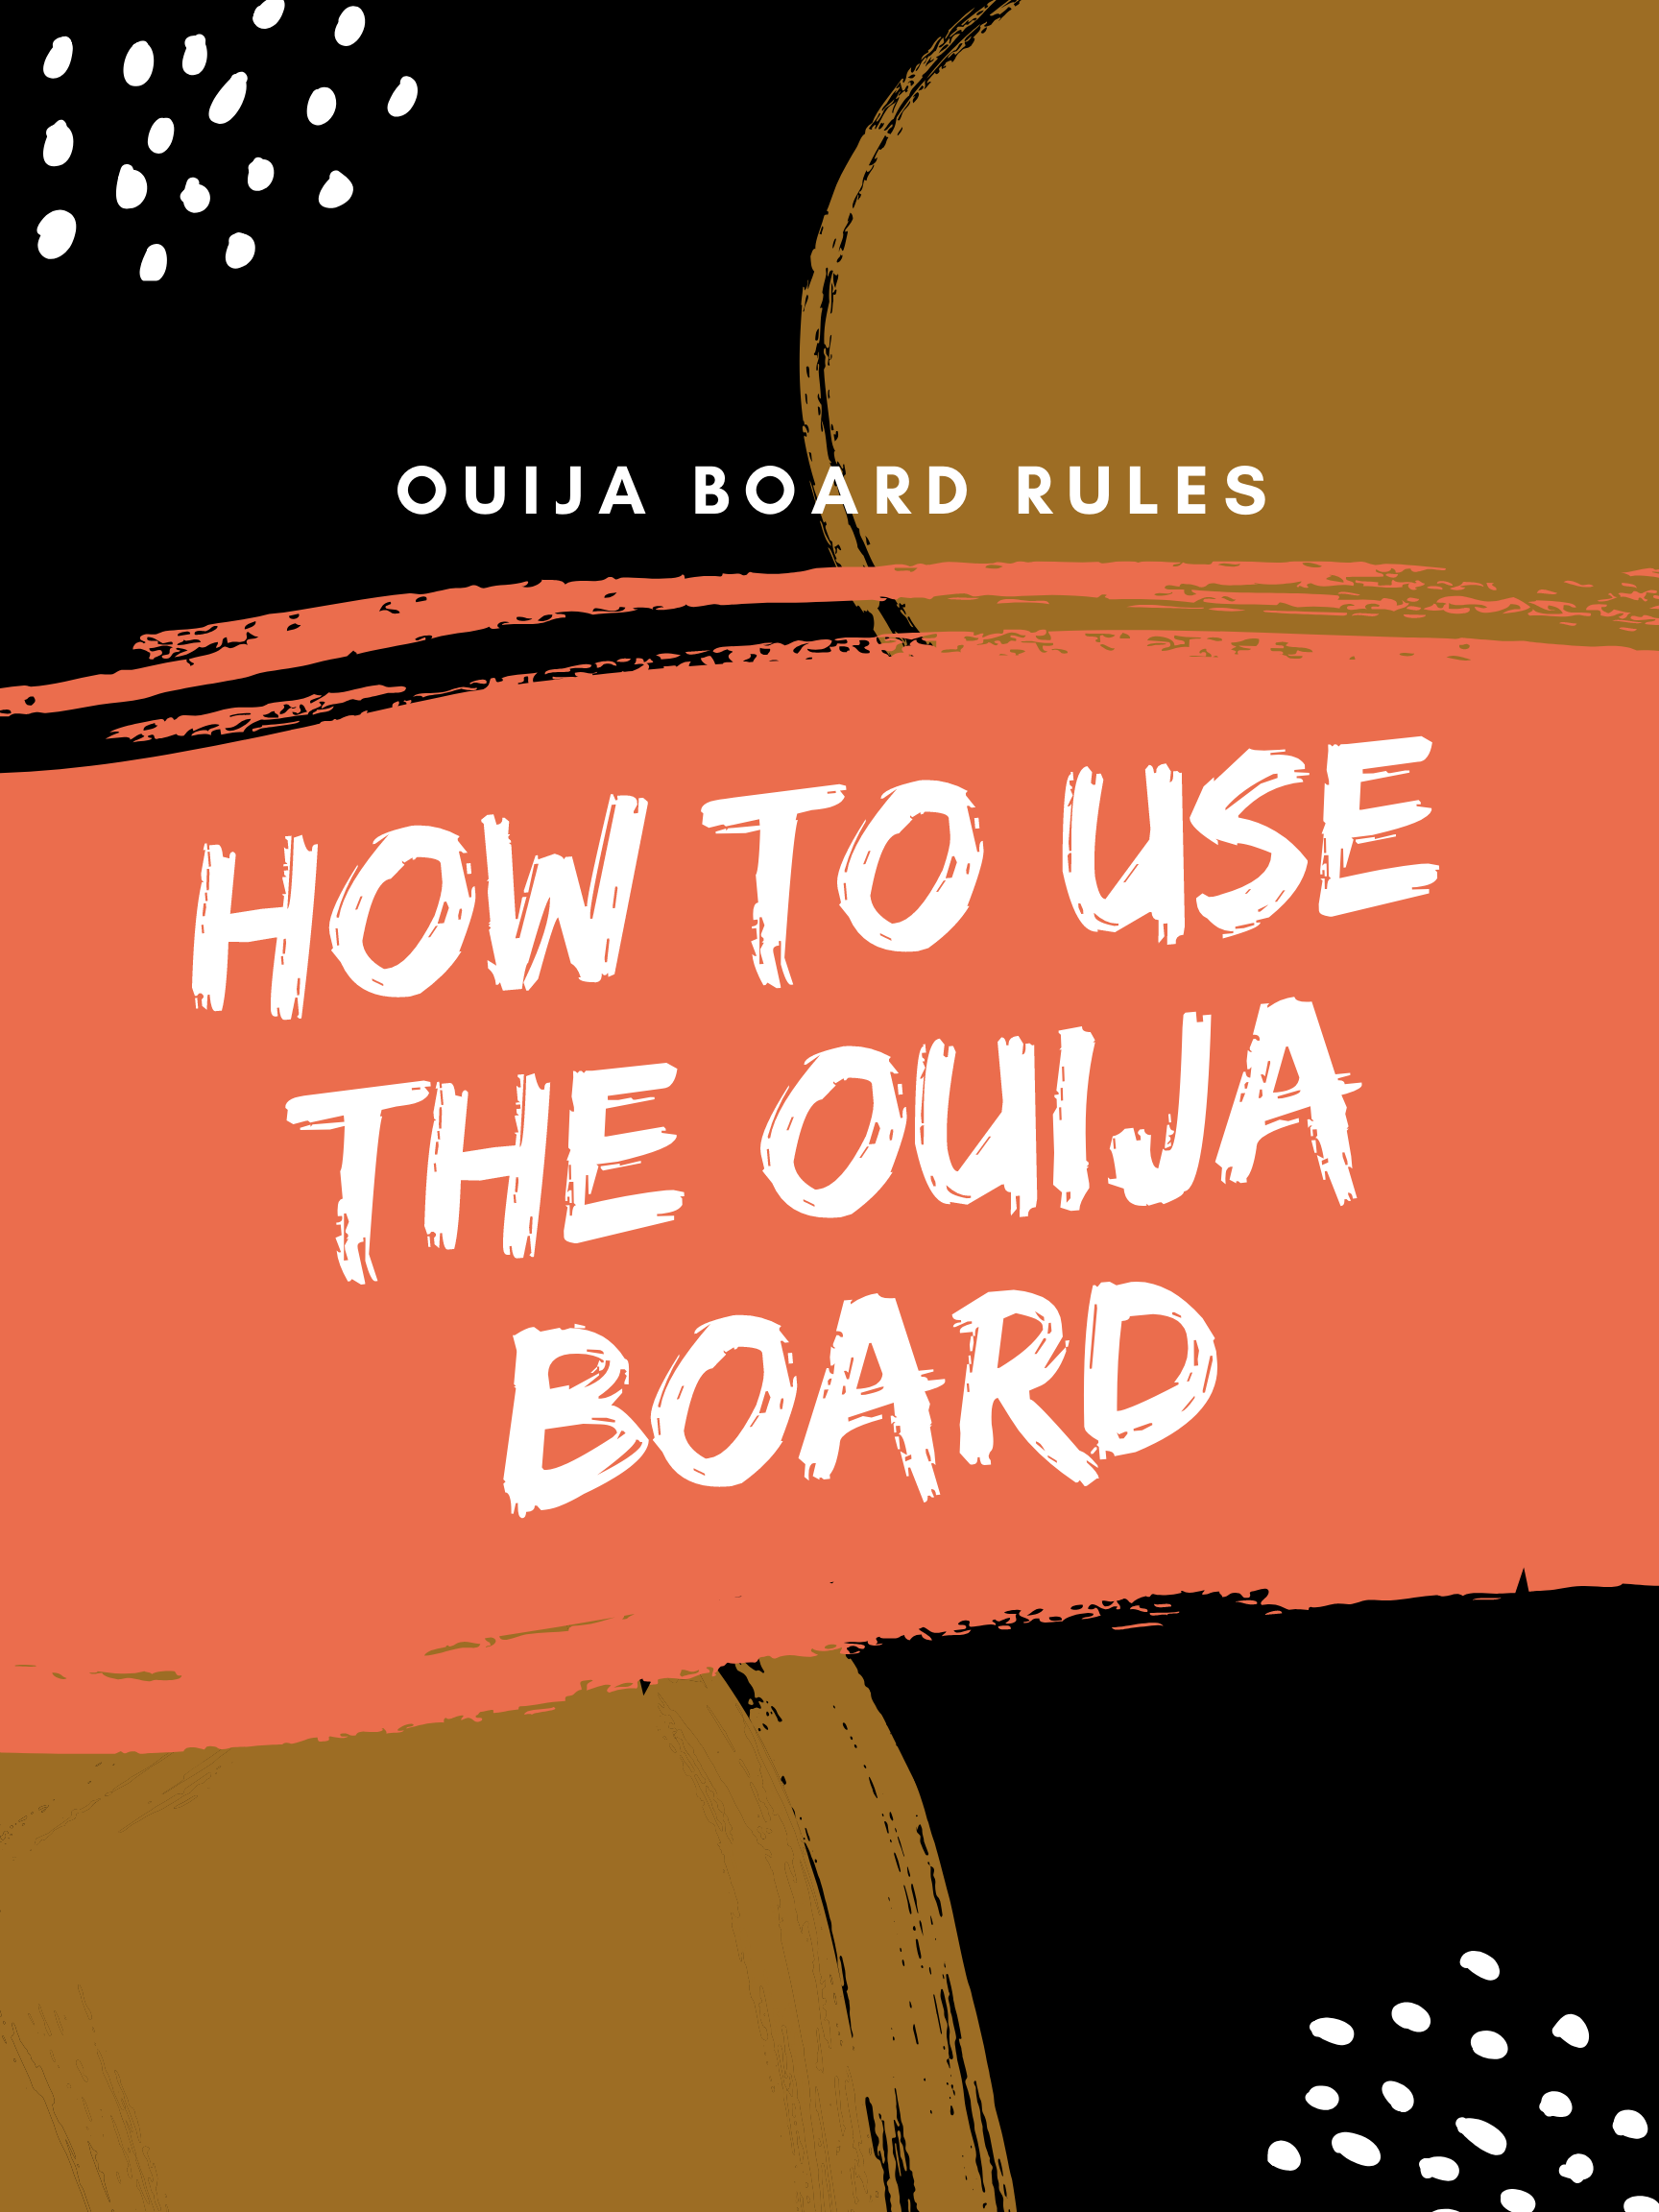 How To Use A Ouija Board Ouija Board Rules